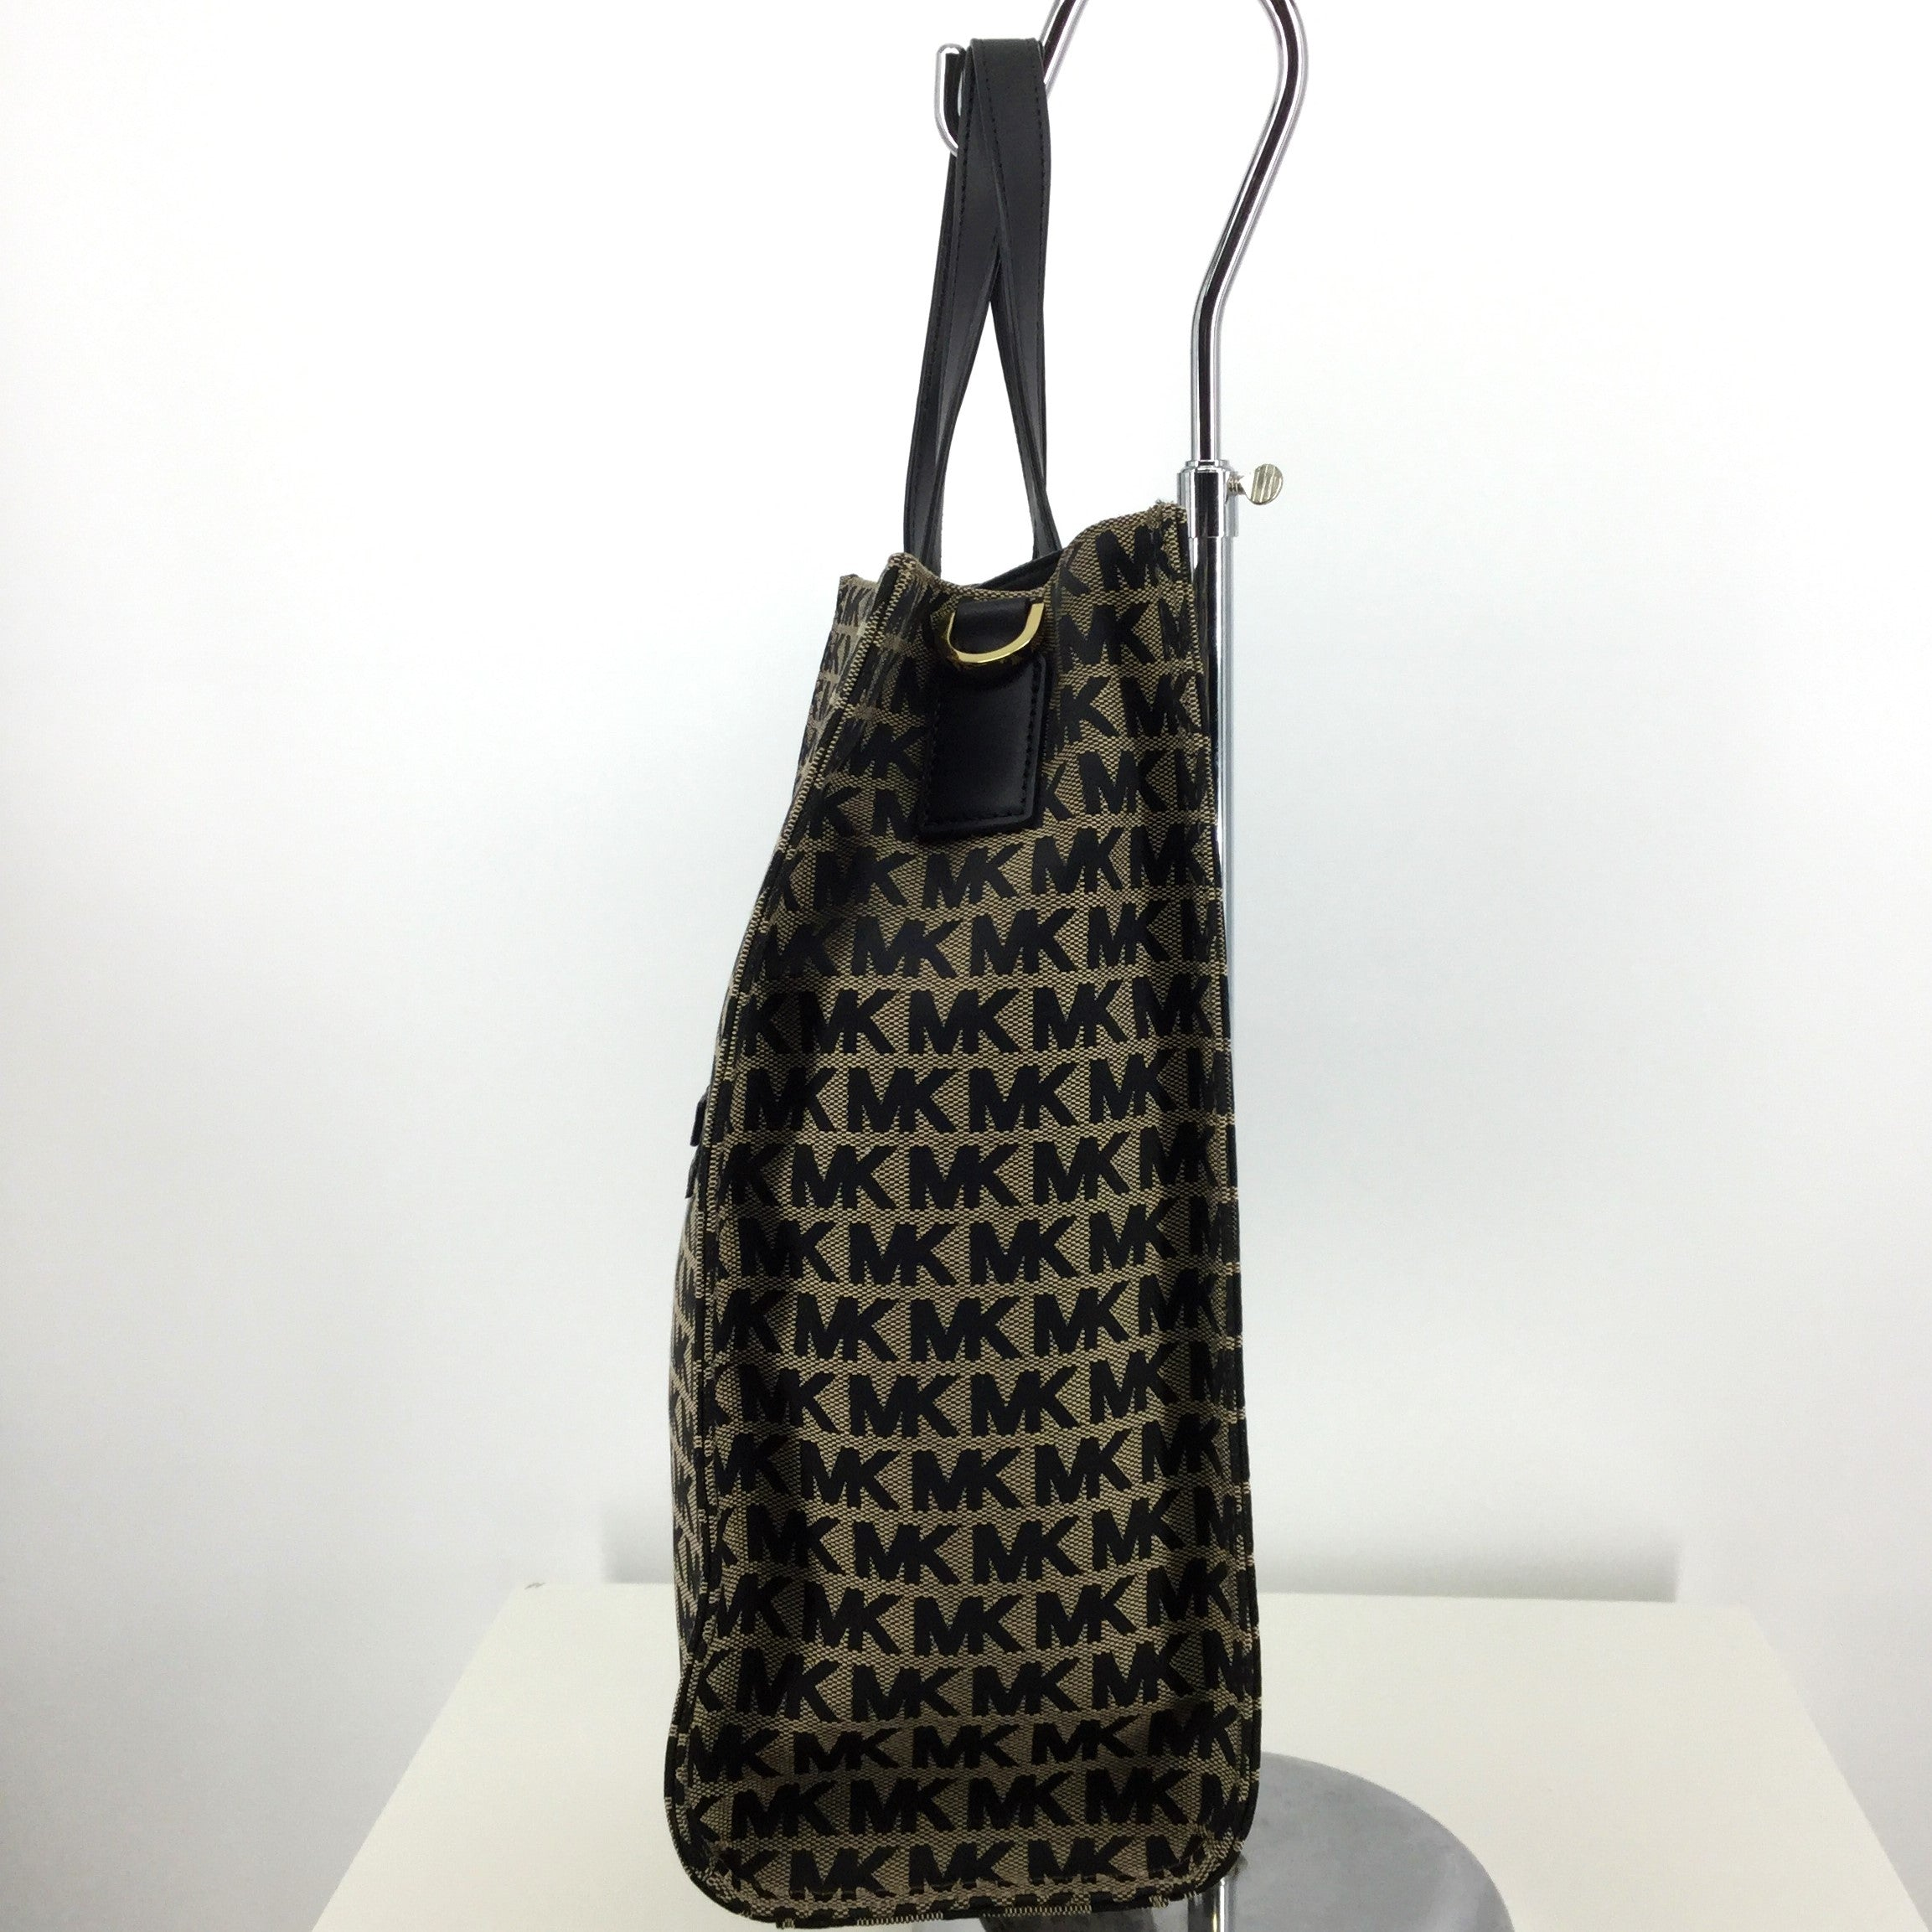 NWT Michael Kors Kenly Tote - BRAND NEW WITH TAGS BEIGE/BLACK SIGNATURE KENLY TOTE. COMES WITH BLACK LEATHER CROSSBODY STRAP. GOLD HARDWARE. BLACK LINING. ONE ZIPPER POCKET AND TWO SLIP POCKETS INSIDE. ONE ZIPPER POCKET ON FRONT.